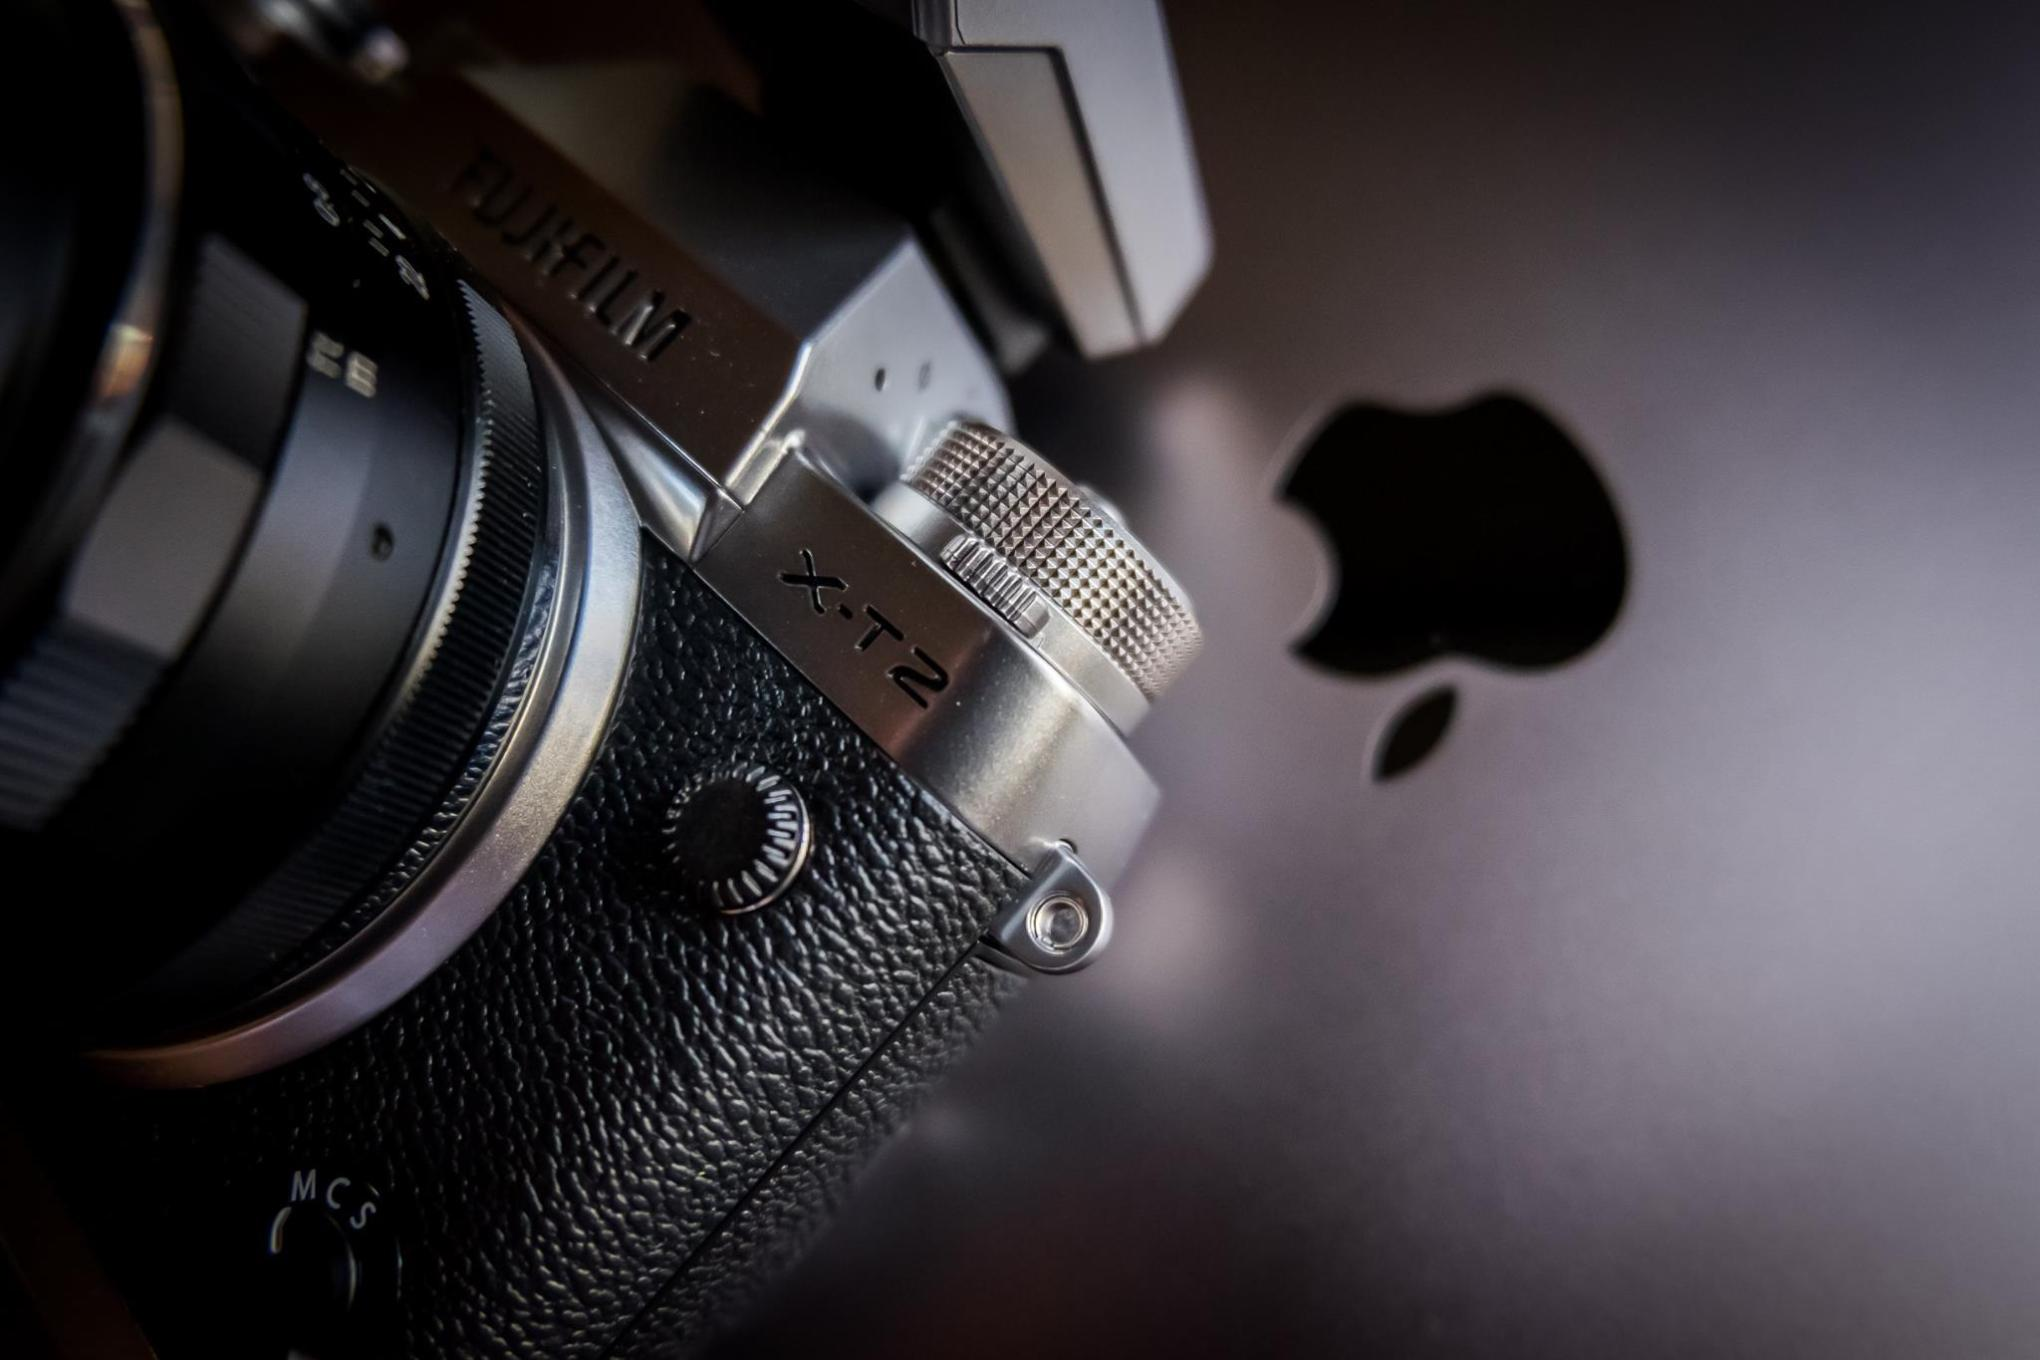 Fujifilm X-T2 (graphite) and a 15'' Macbook Pro (space grey) side by side.